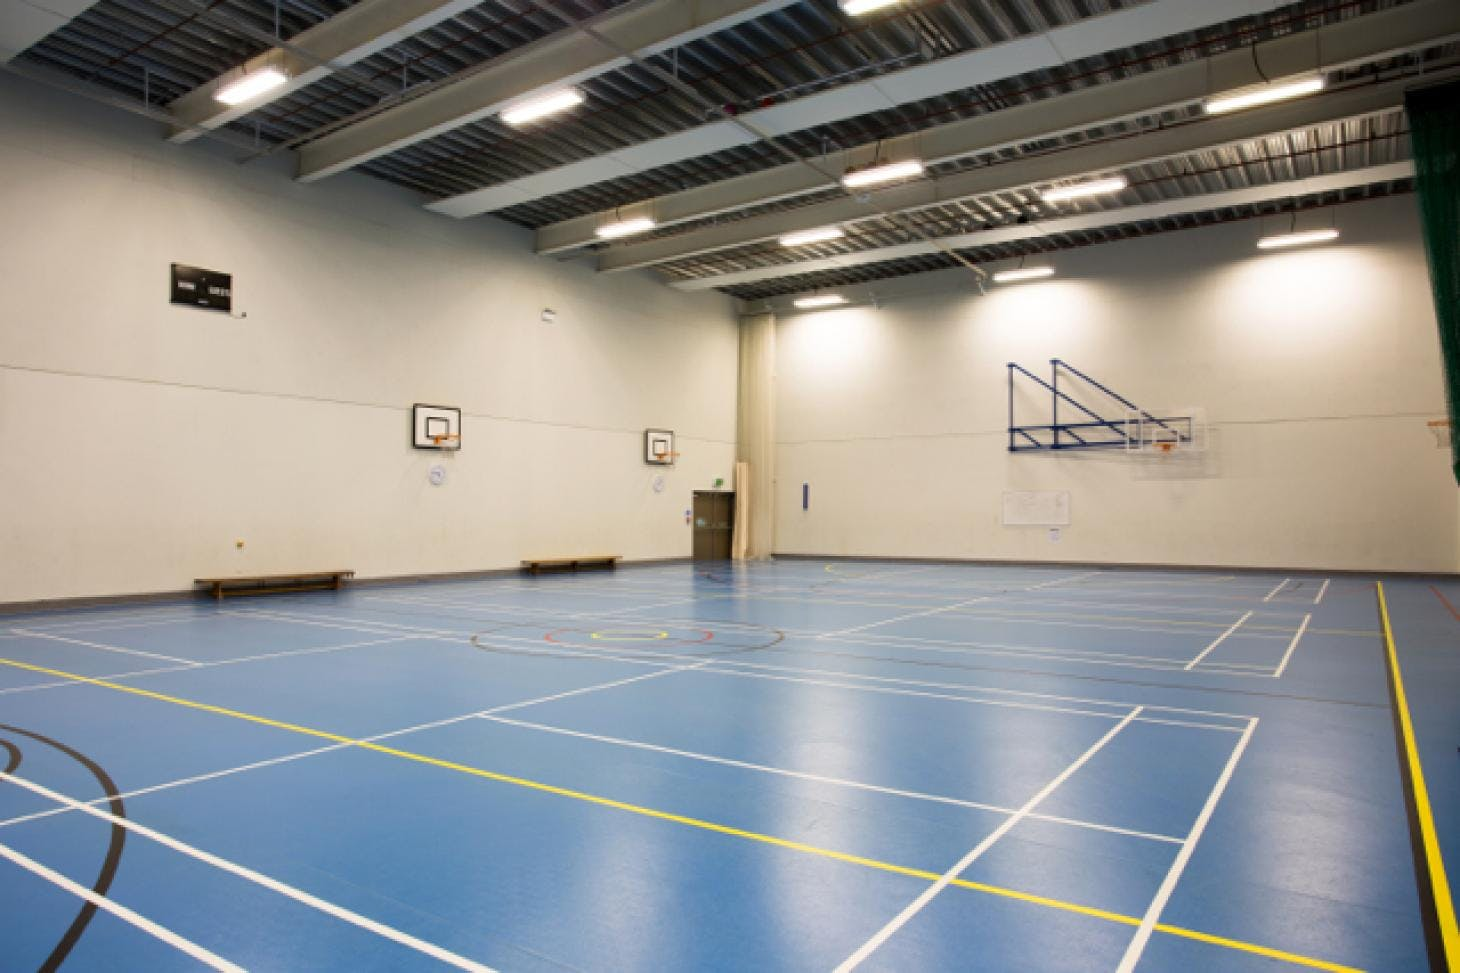 Frederick Bremer School Indoor | Hard badminton court